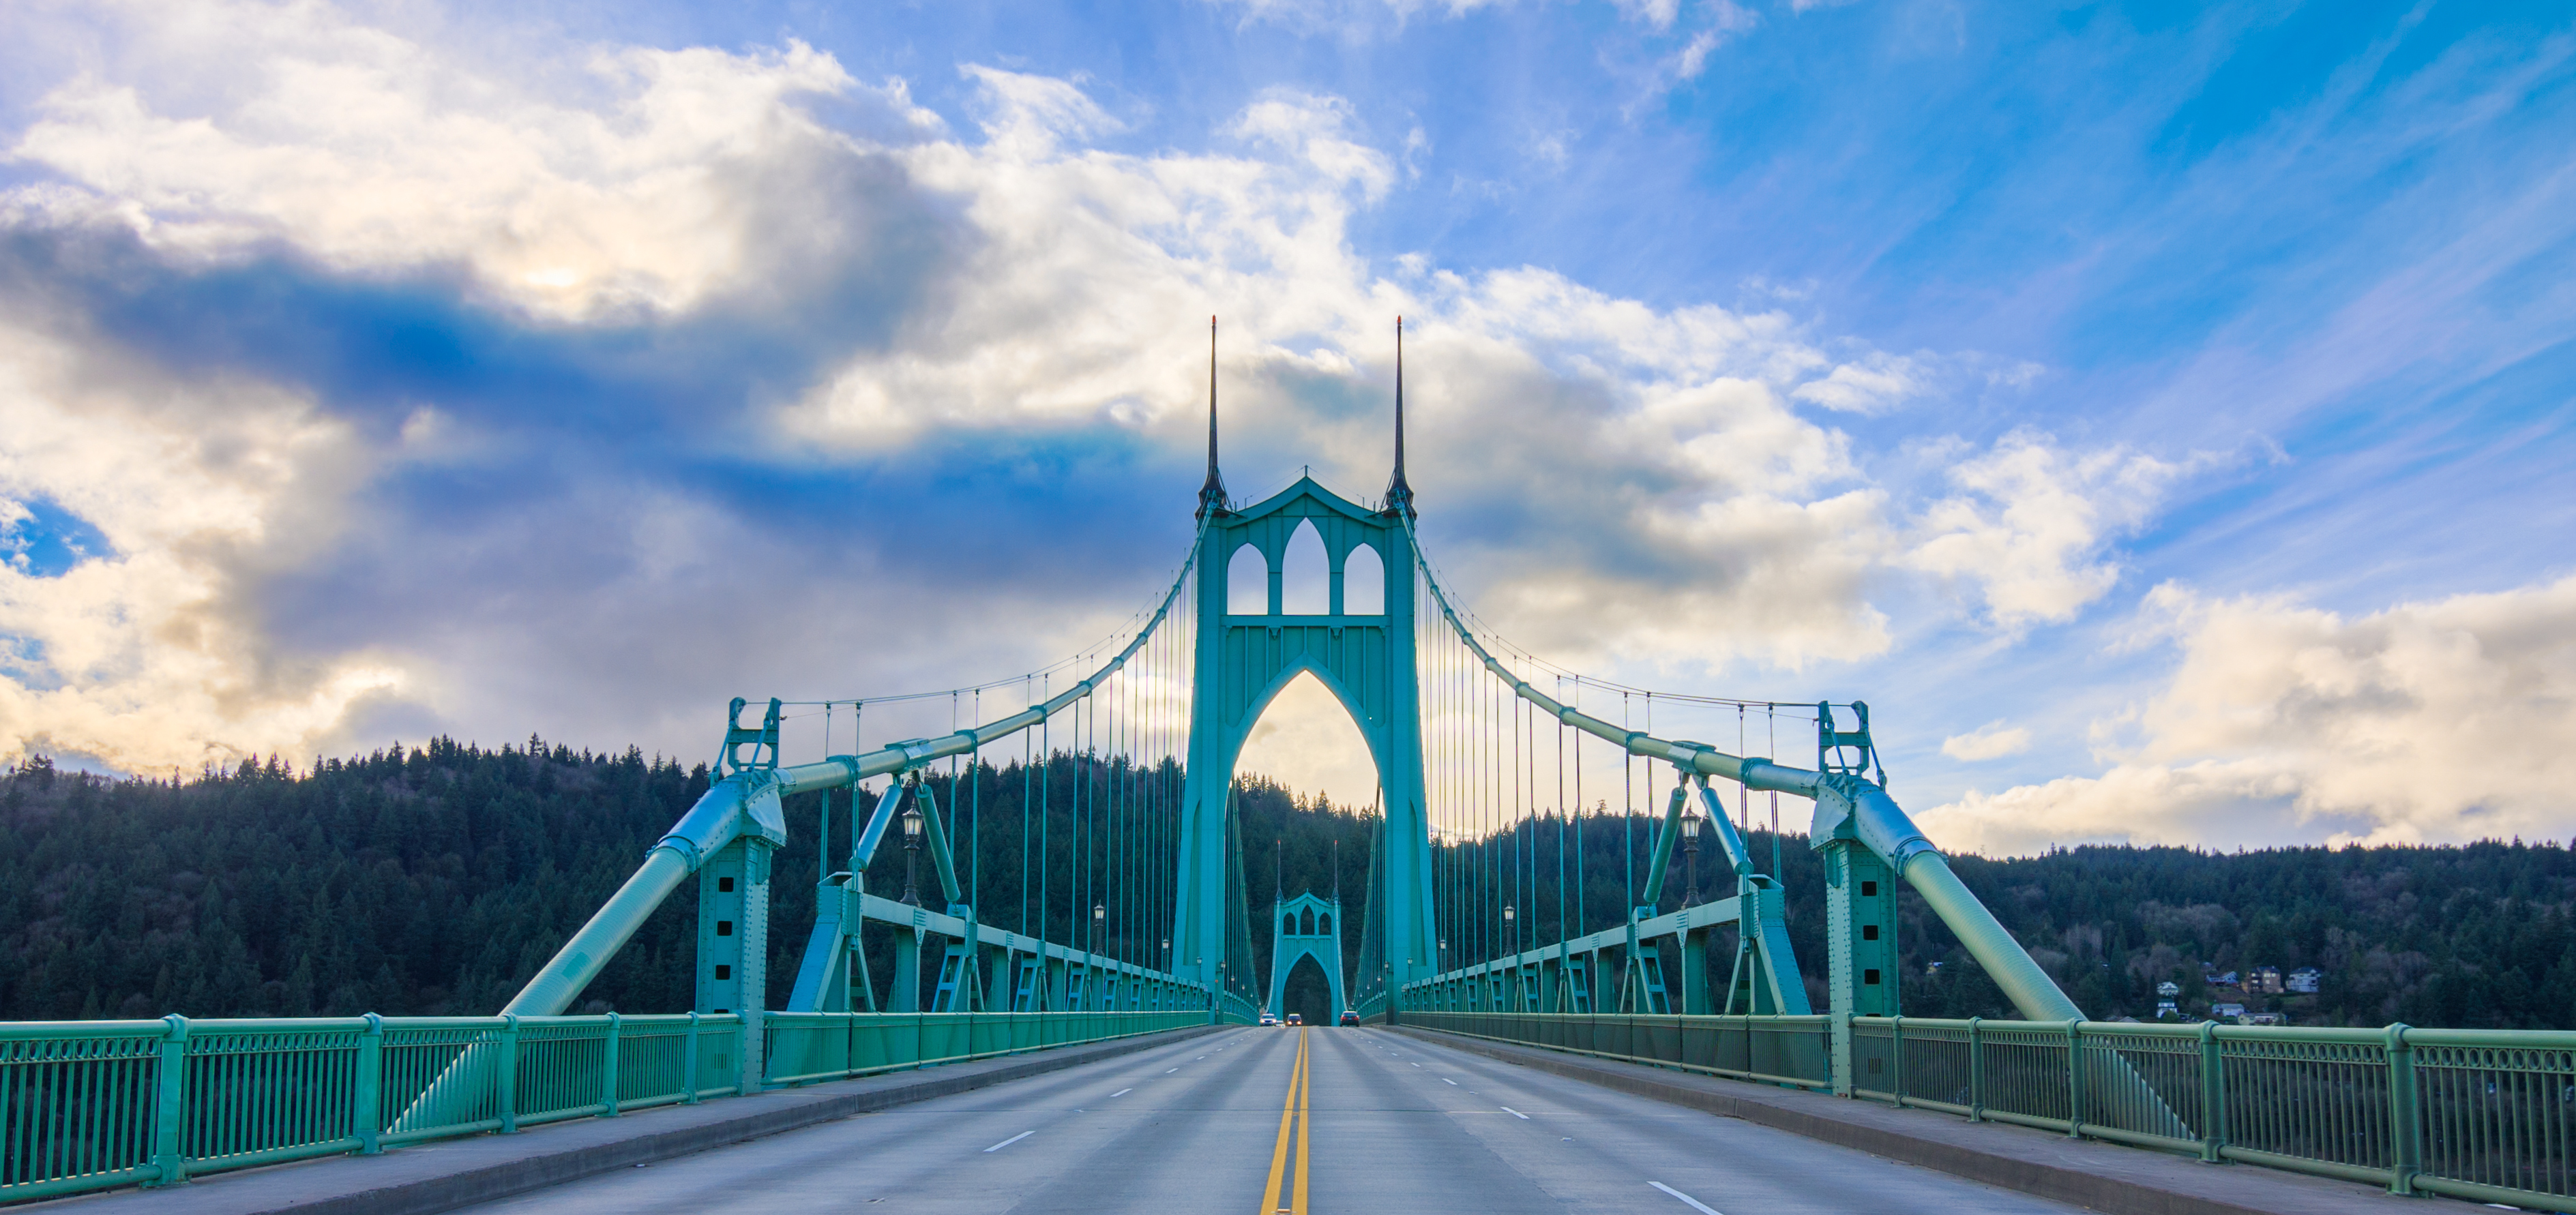 St. Johns Bridge in Portland, OR